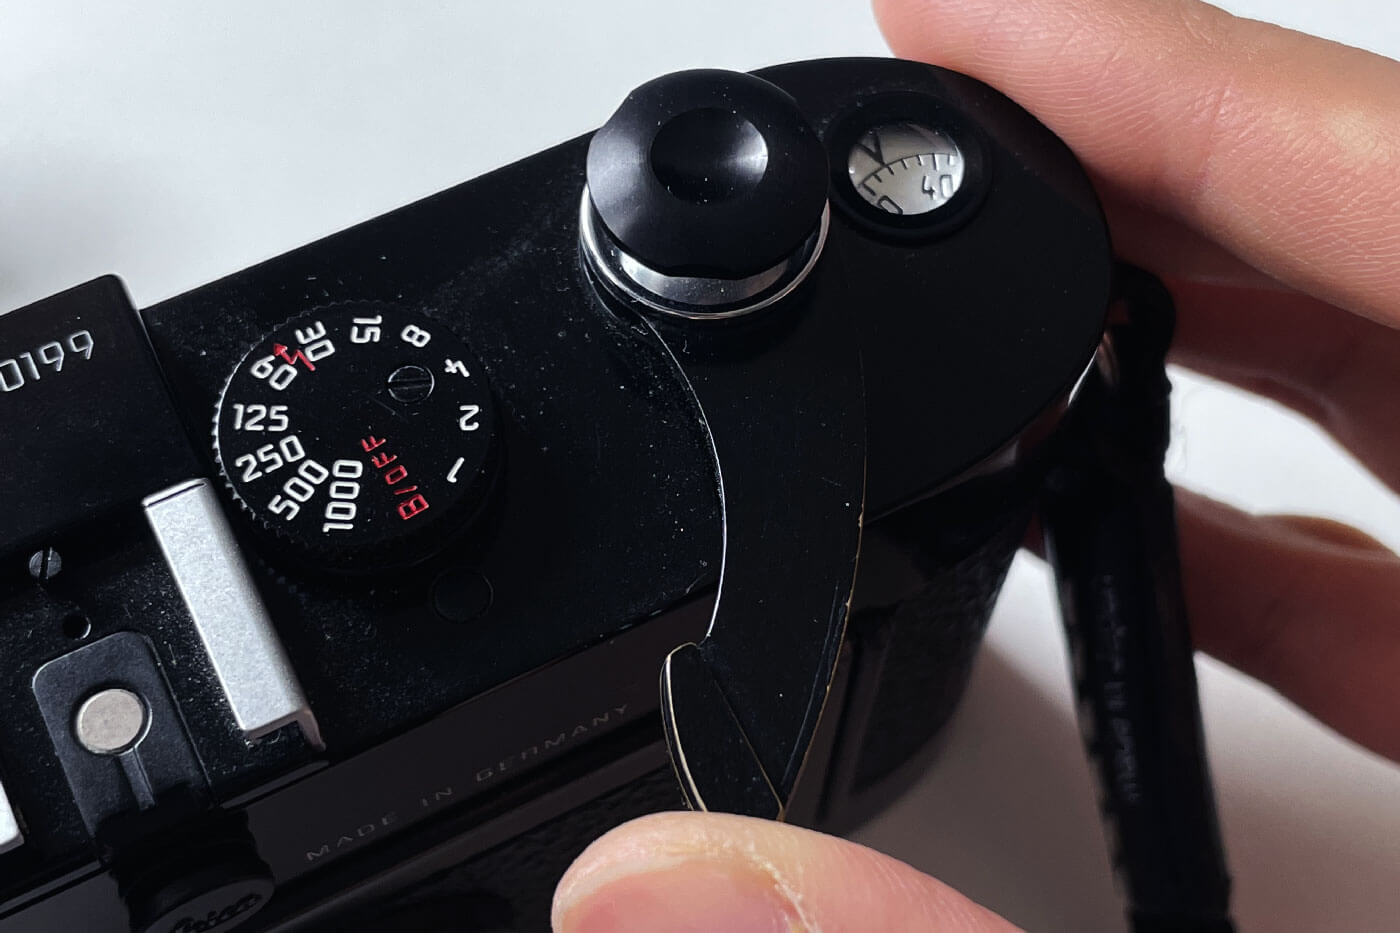 how-to-load-film-into-35mm-film-camera-135-extra-frame-properly-correct-way-best-check-beginner-tips-guide-advancing-advance-lever